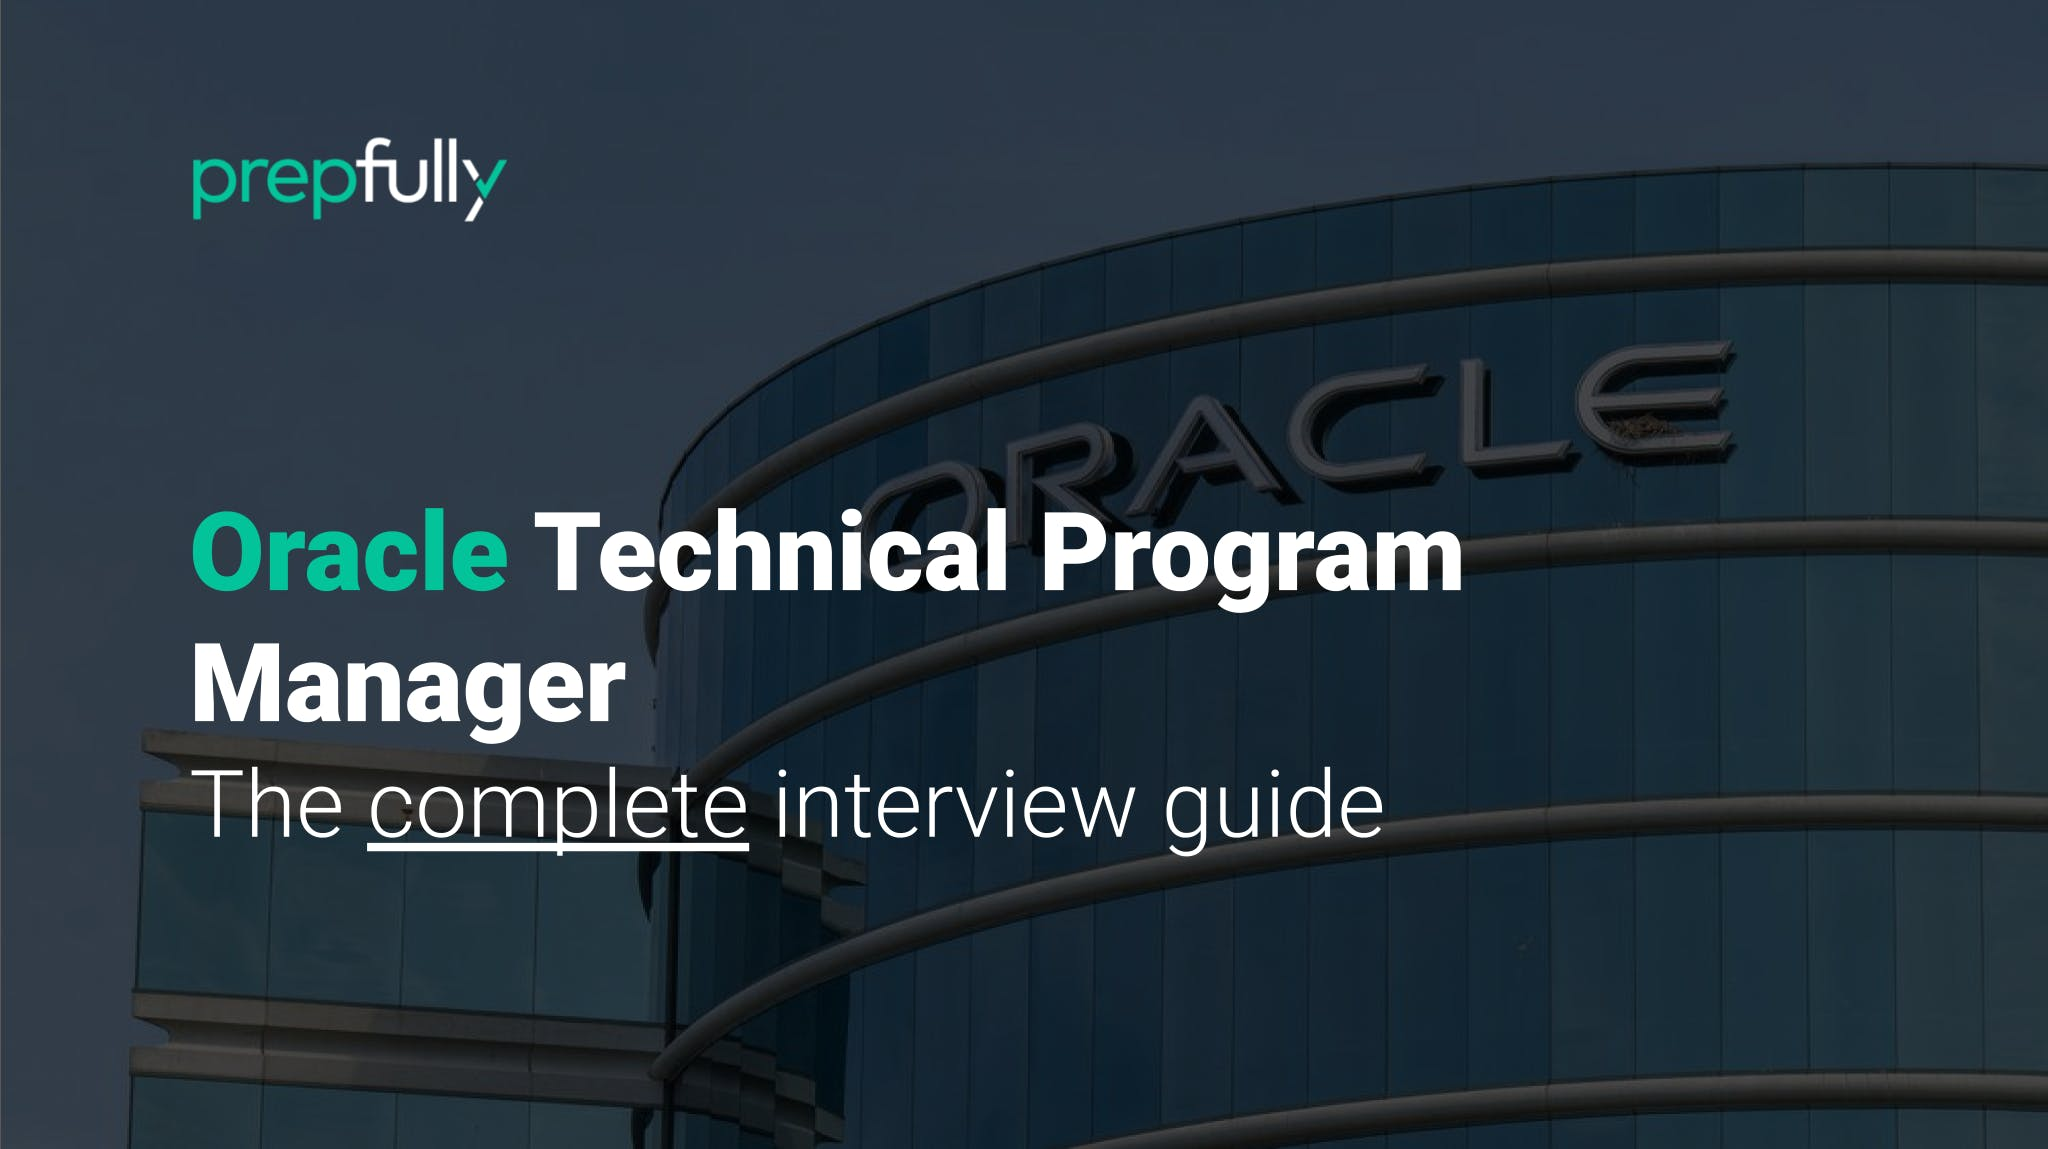 Interview guide for Oracle Technical Program Manager